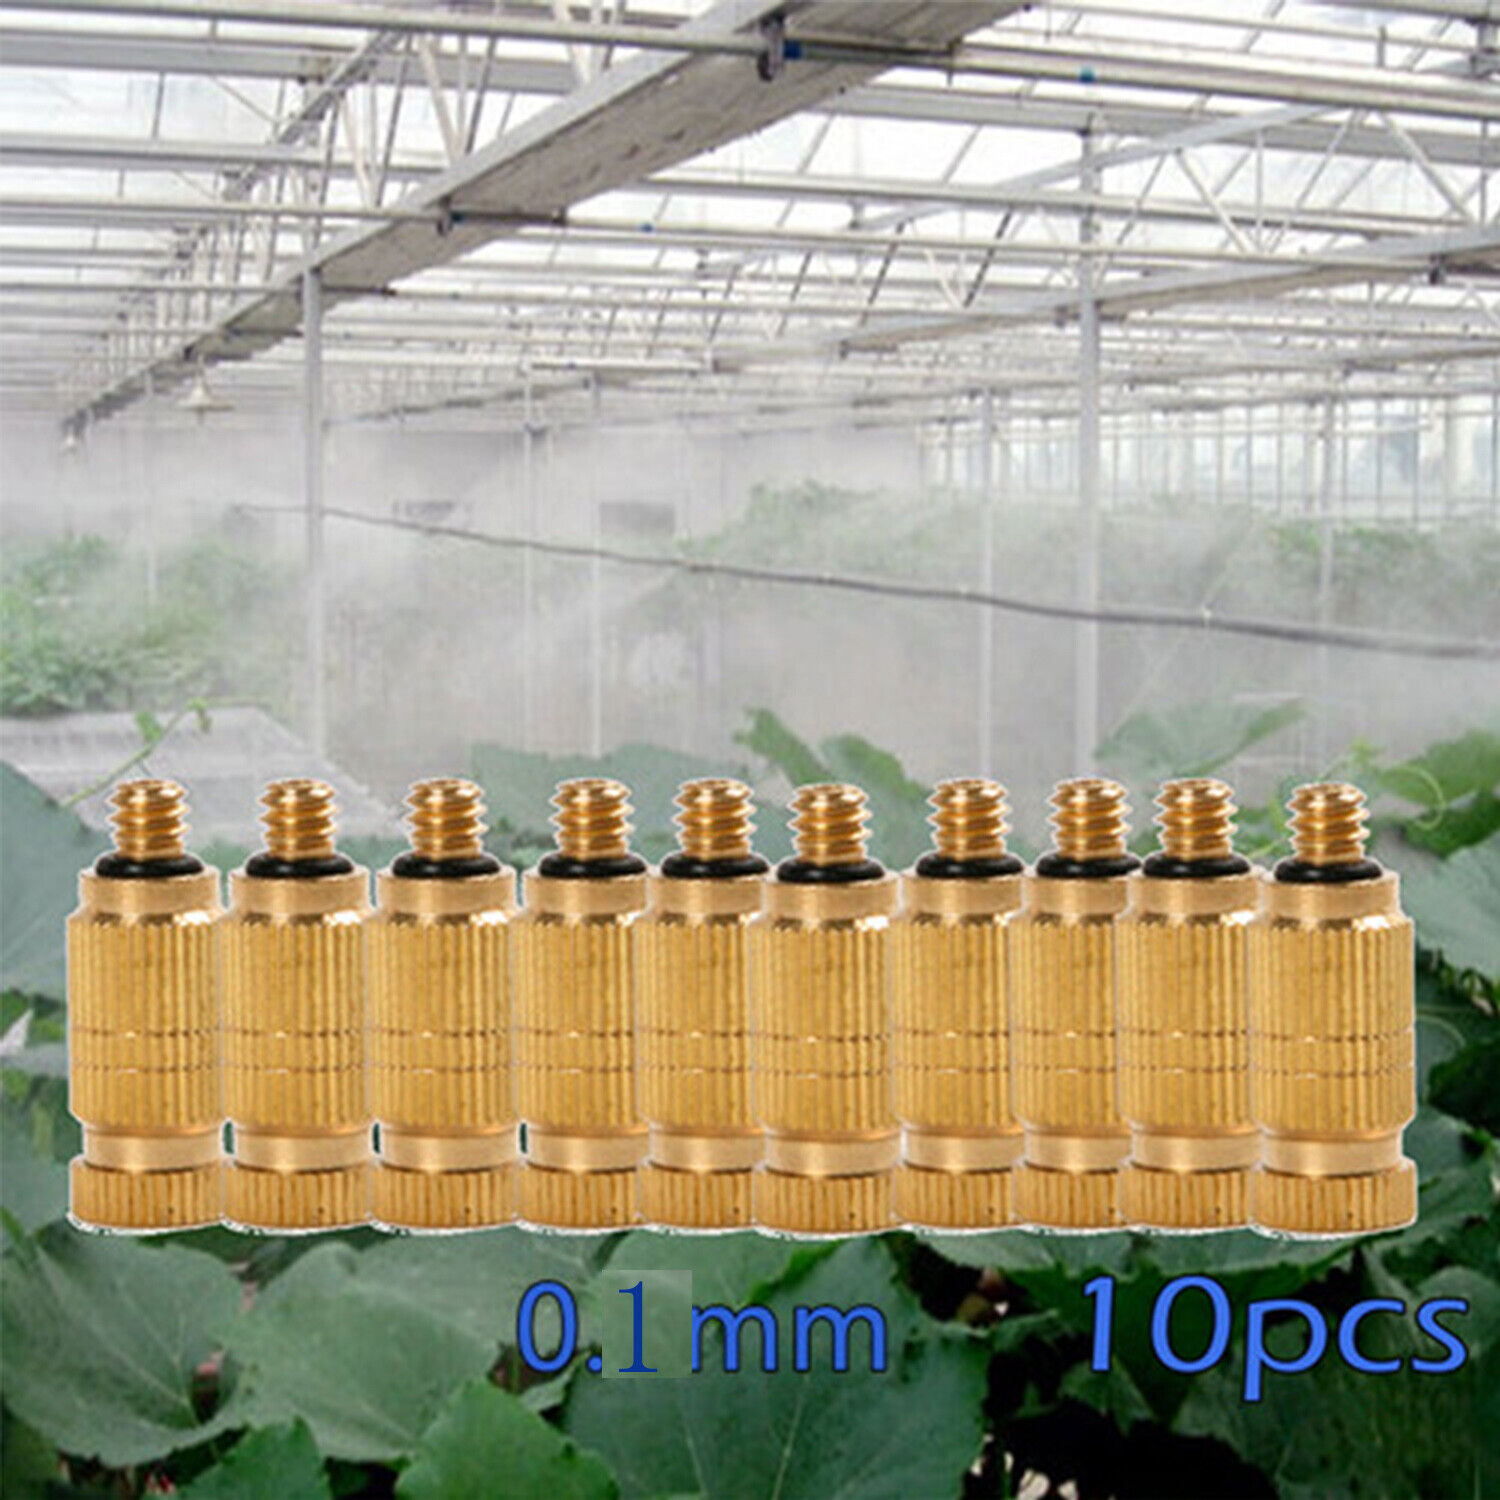 10x Brass Fogging Nozzle Misting Nozzles 0.1mm for Cooling Systems Sprayer Part